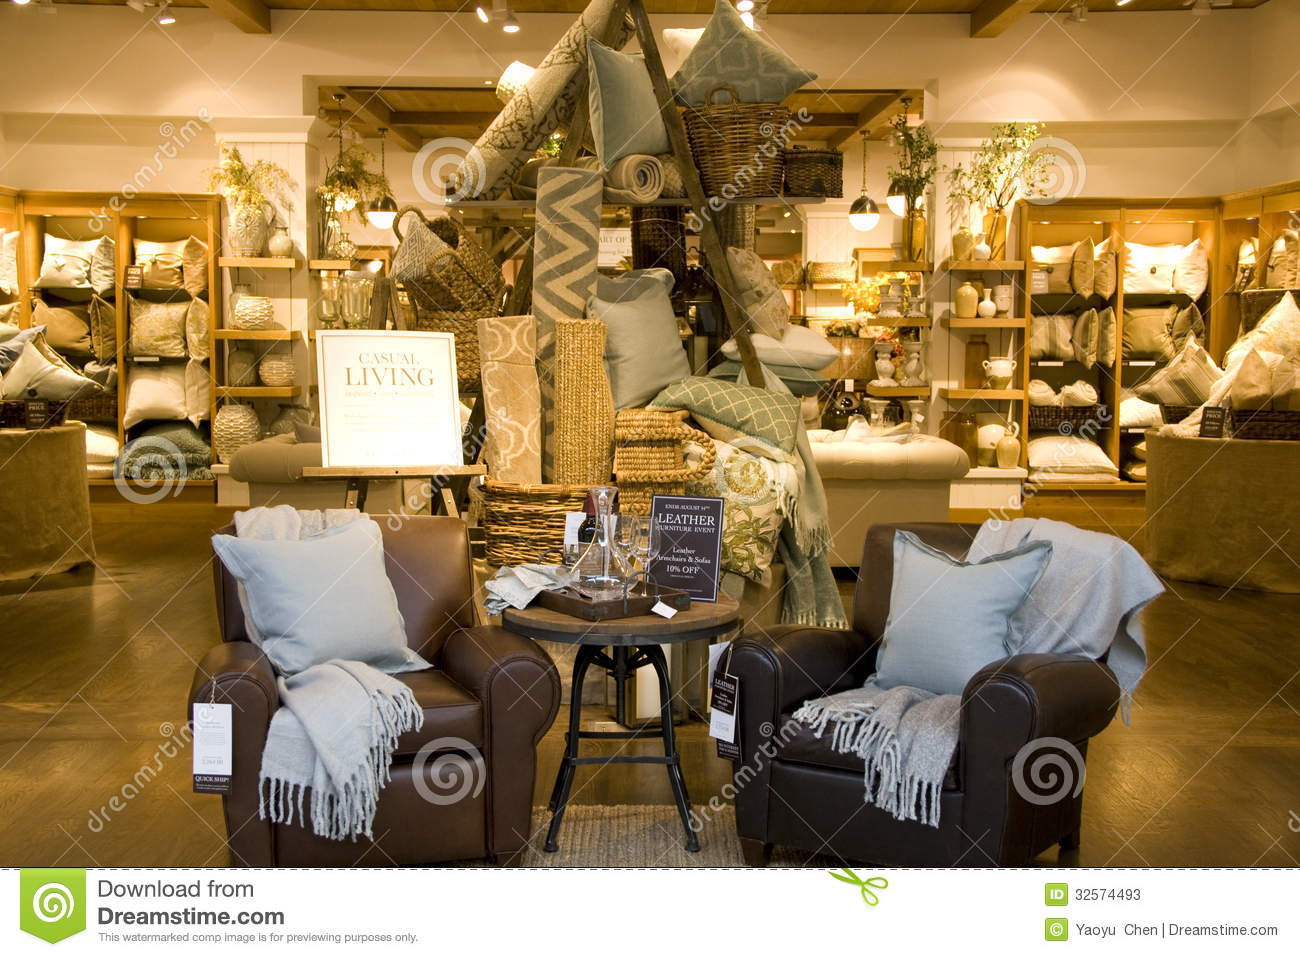 Furniture home decor store editorial stock photo image 32574493 - Good home decor stores image ...